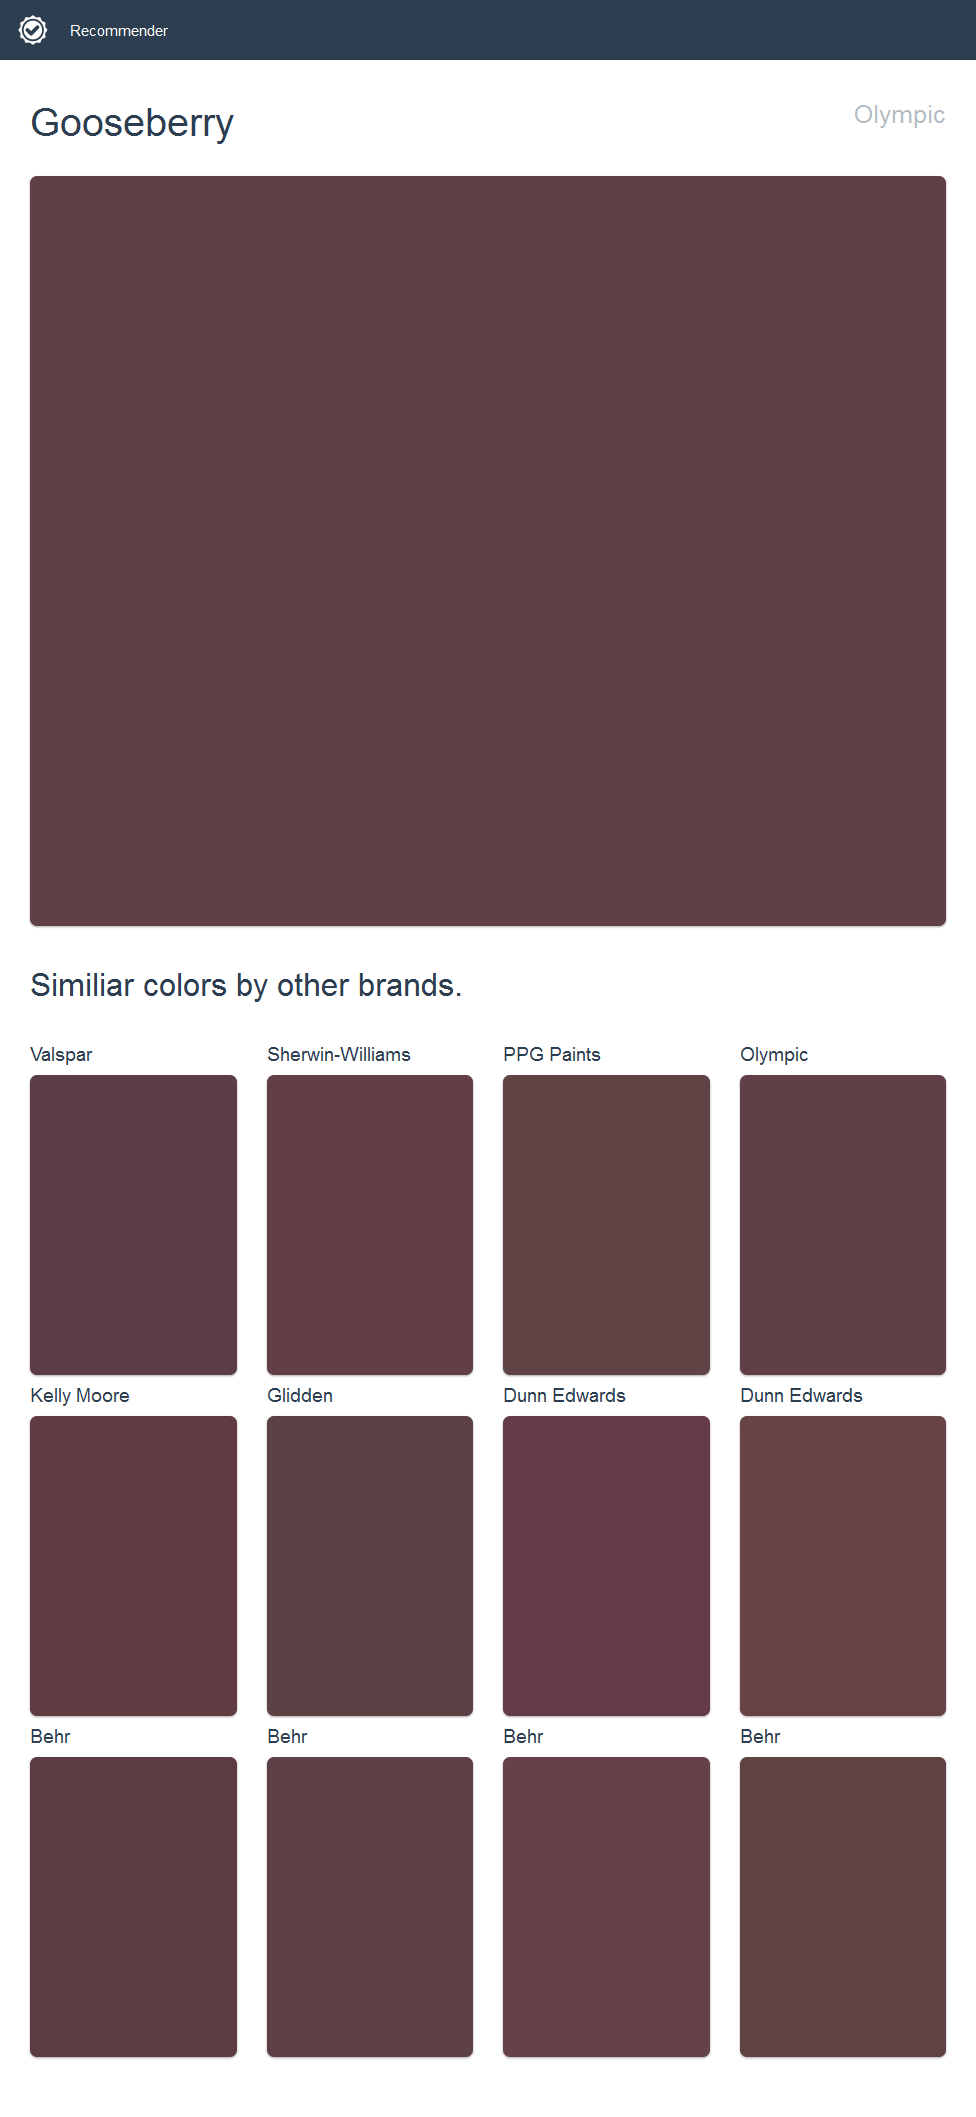 Click The Image To See Similiar Colors By Other Brands.